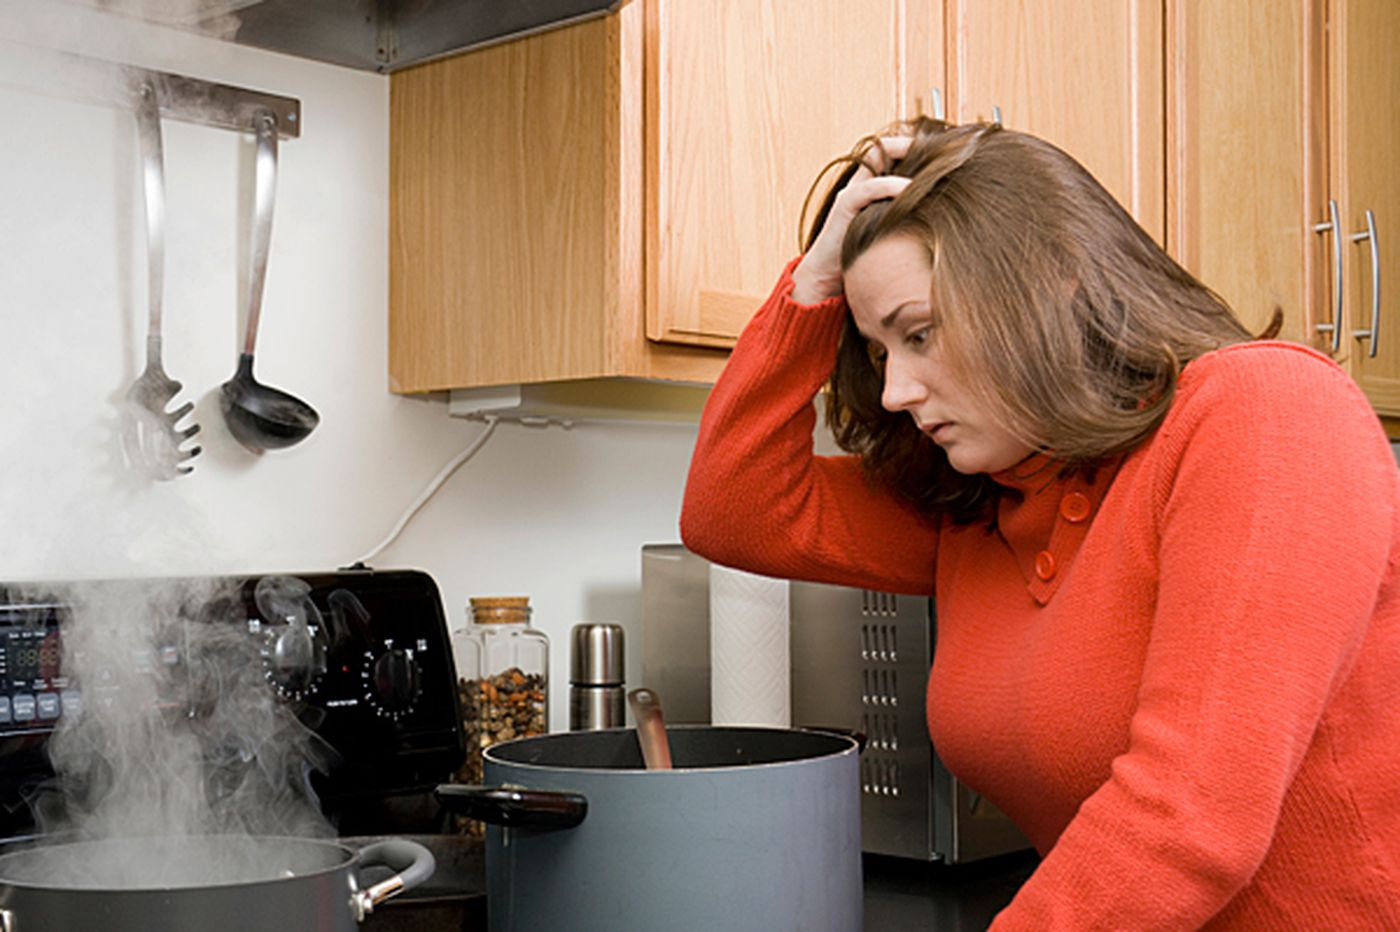 Will marriage suffer if she hates to cook?